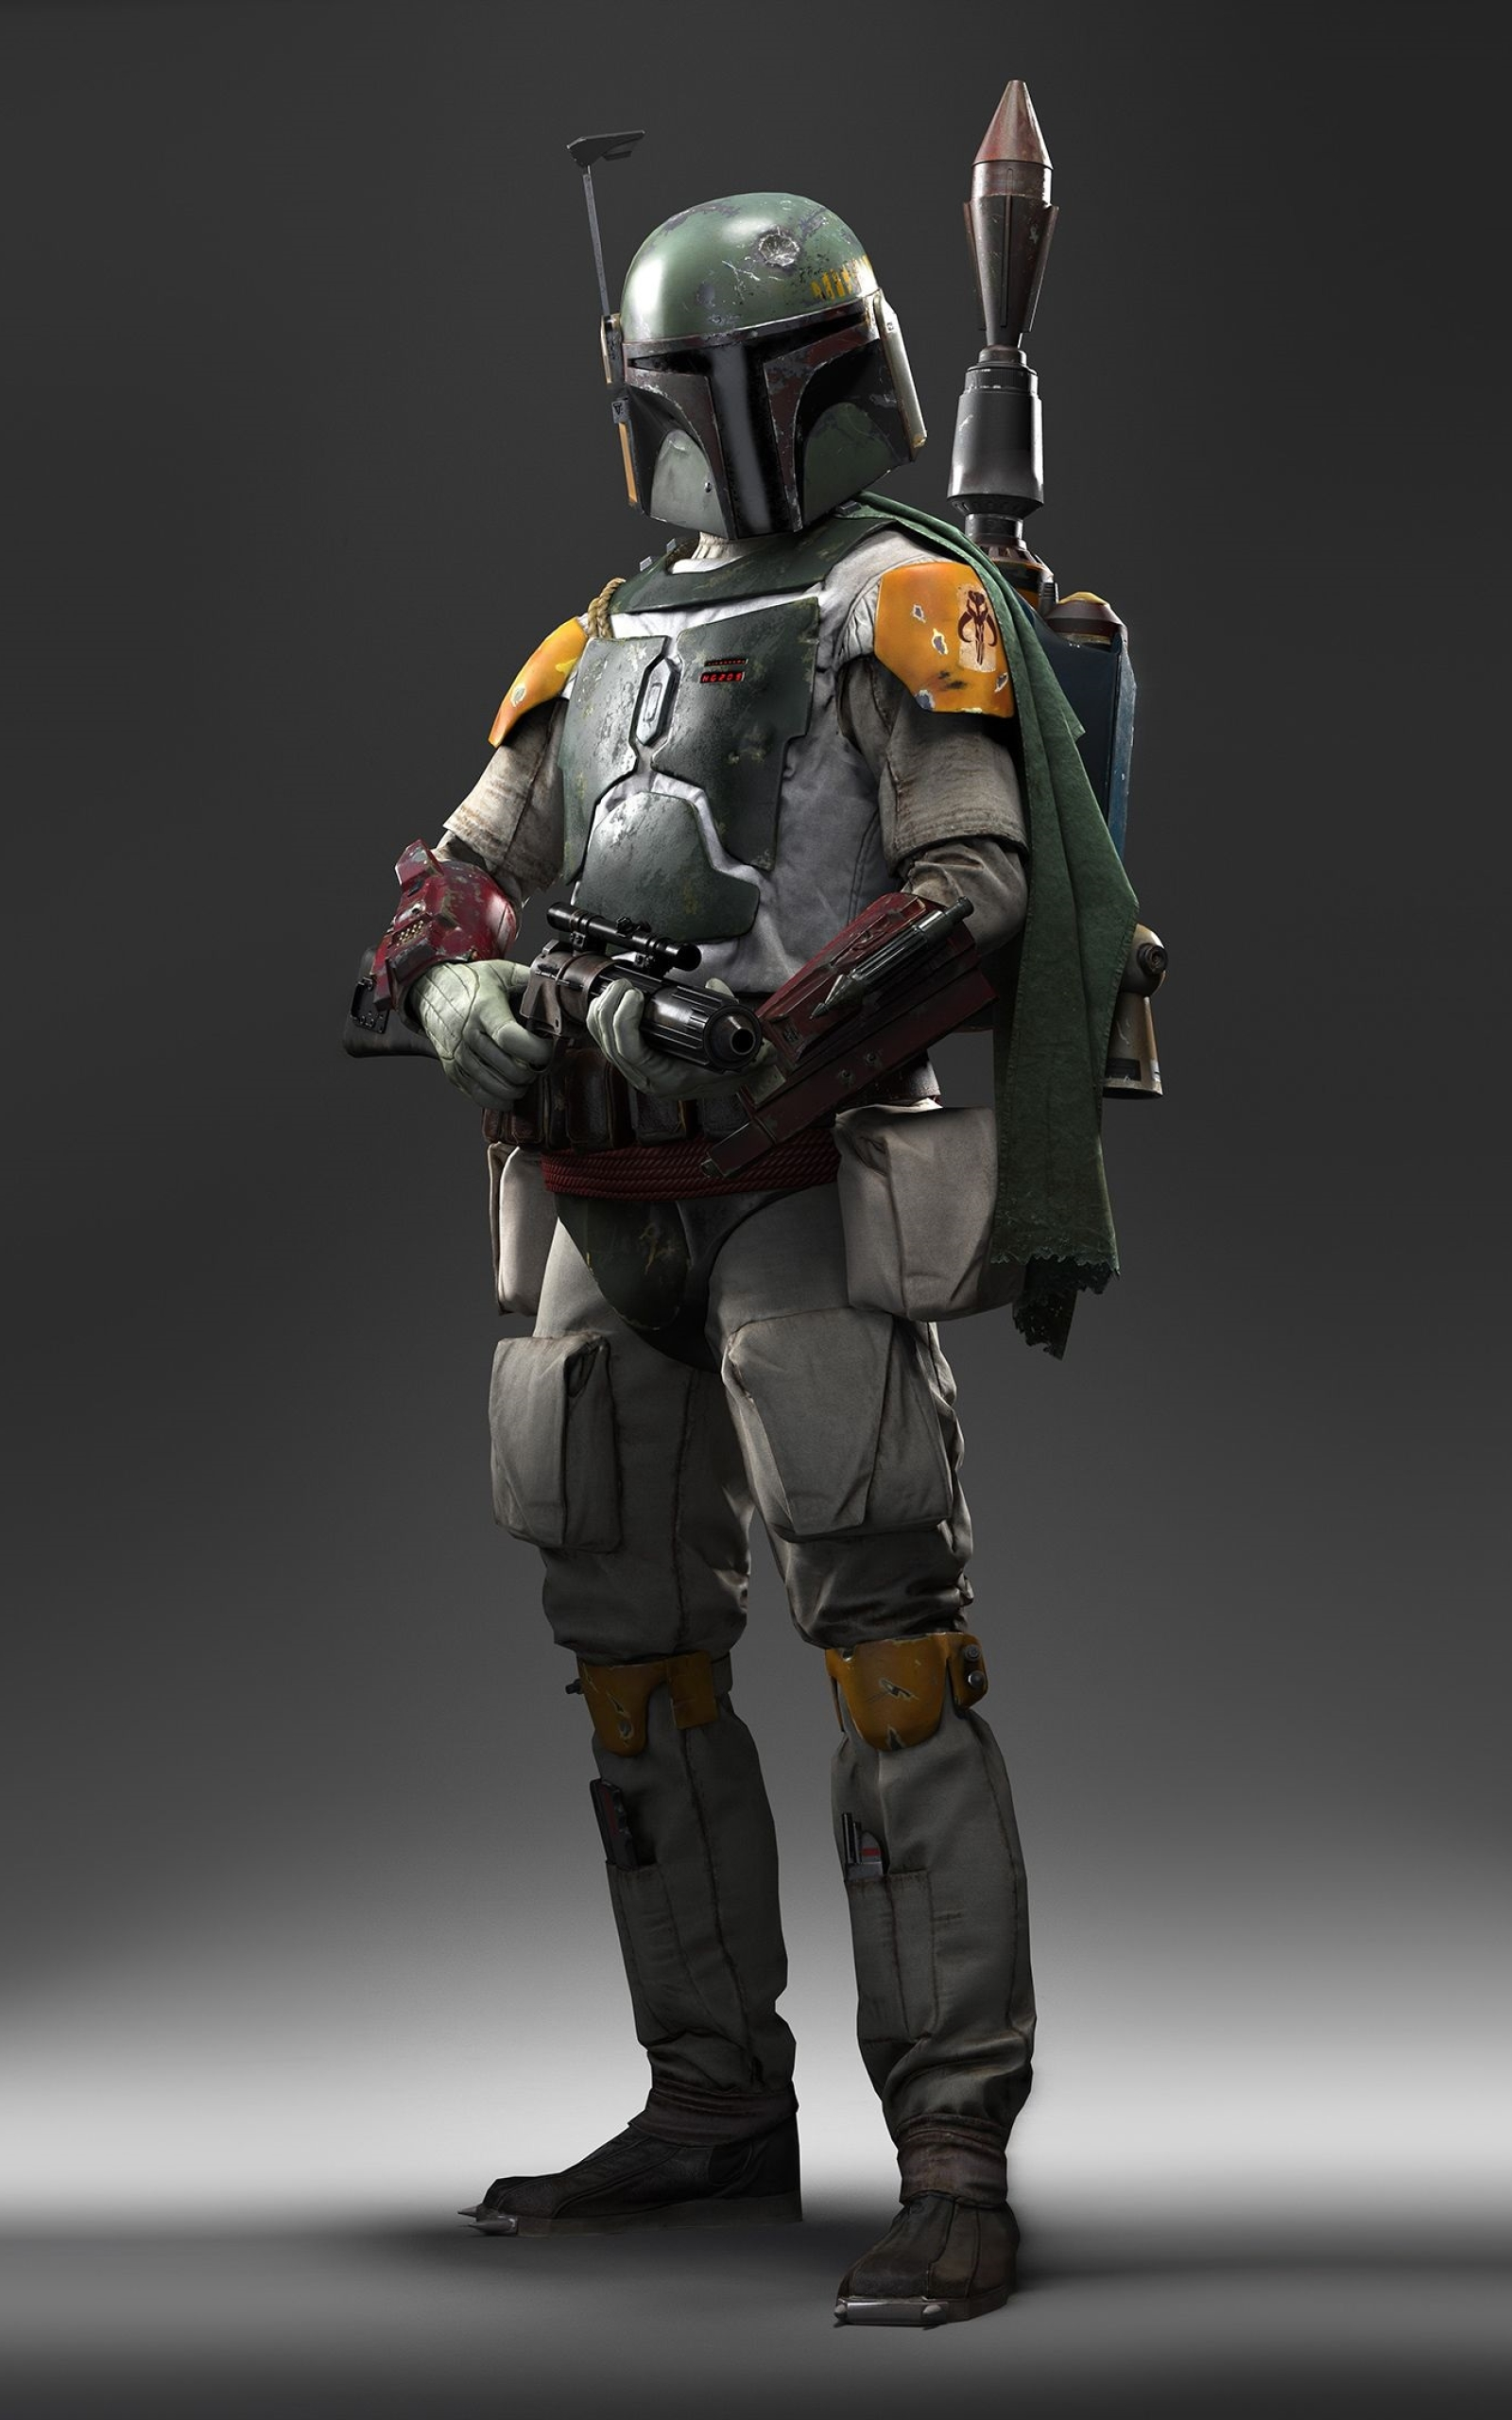 1600x2560 Boba Fett Star Wars 1600x2560 Resolution Wallpaper Hd Movies 4k Wallpapers Images Photos And Background